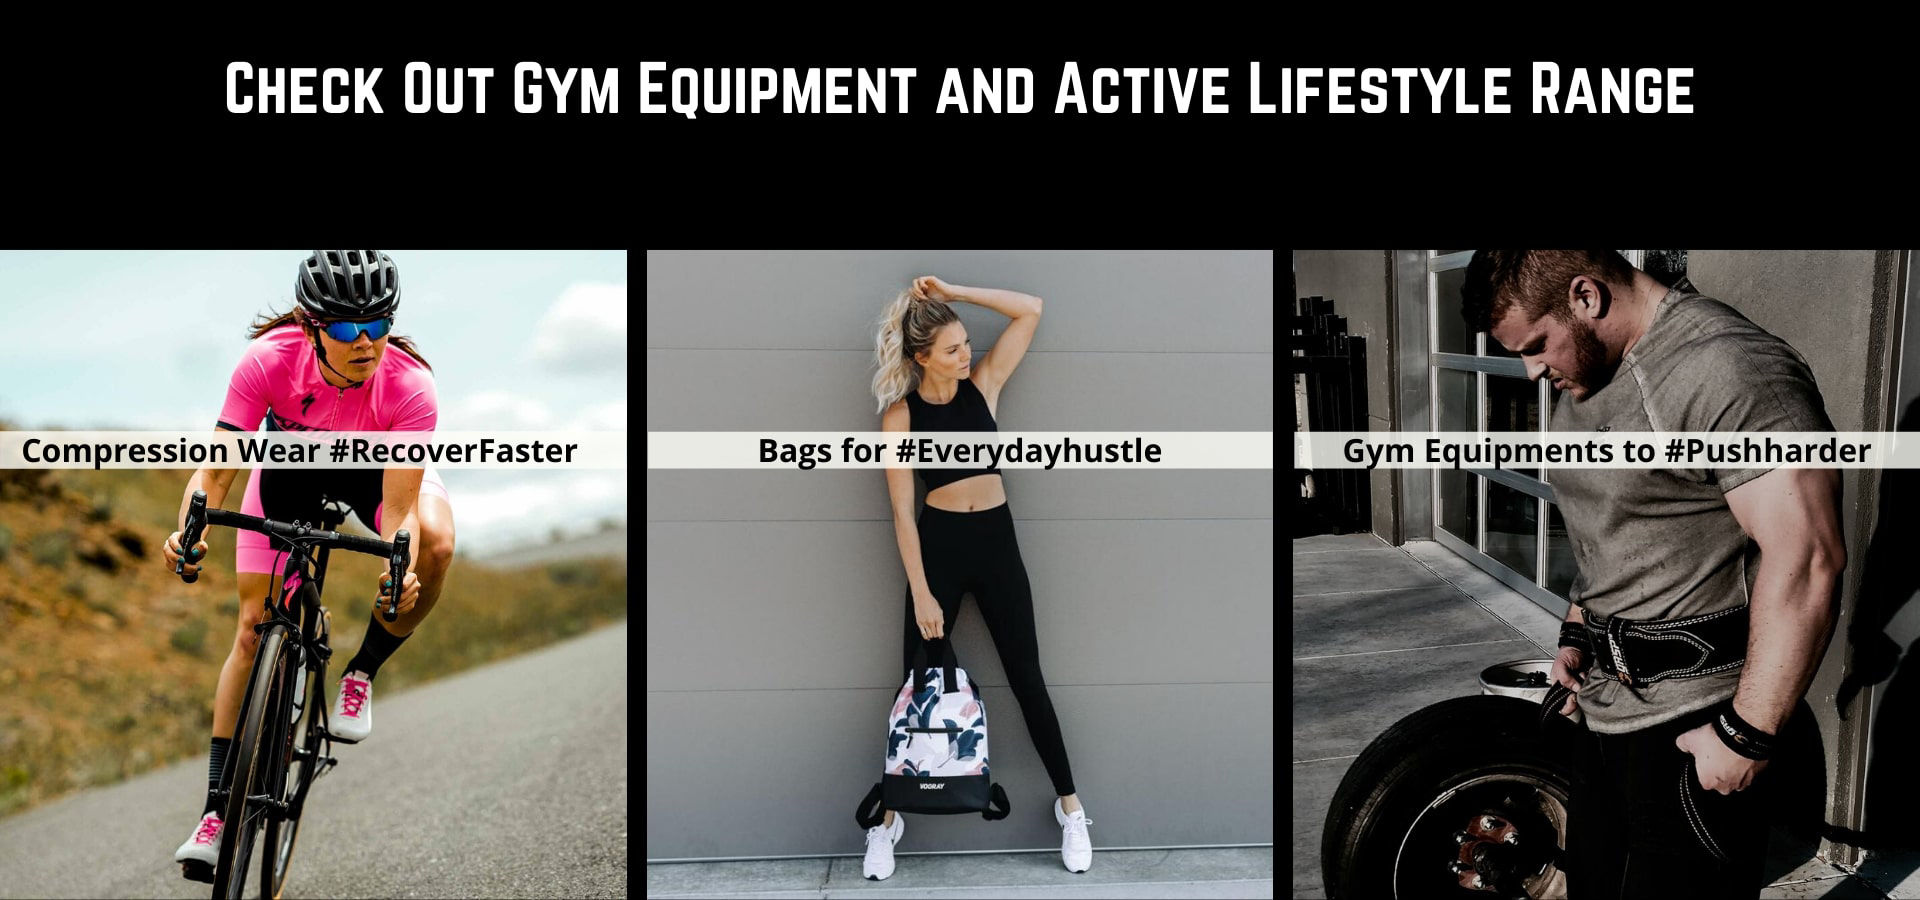 Shop Gym equipments to Improve Workouts